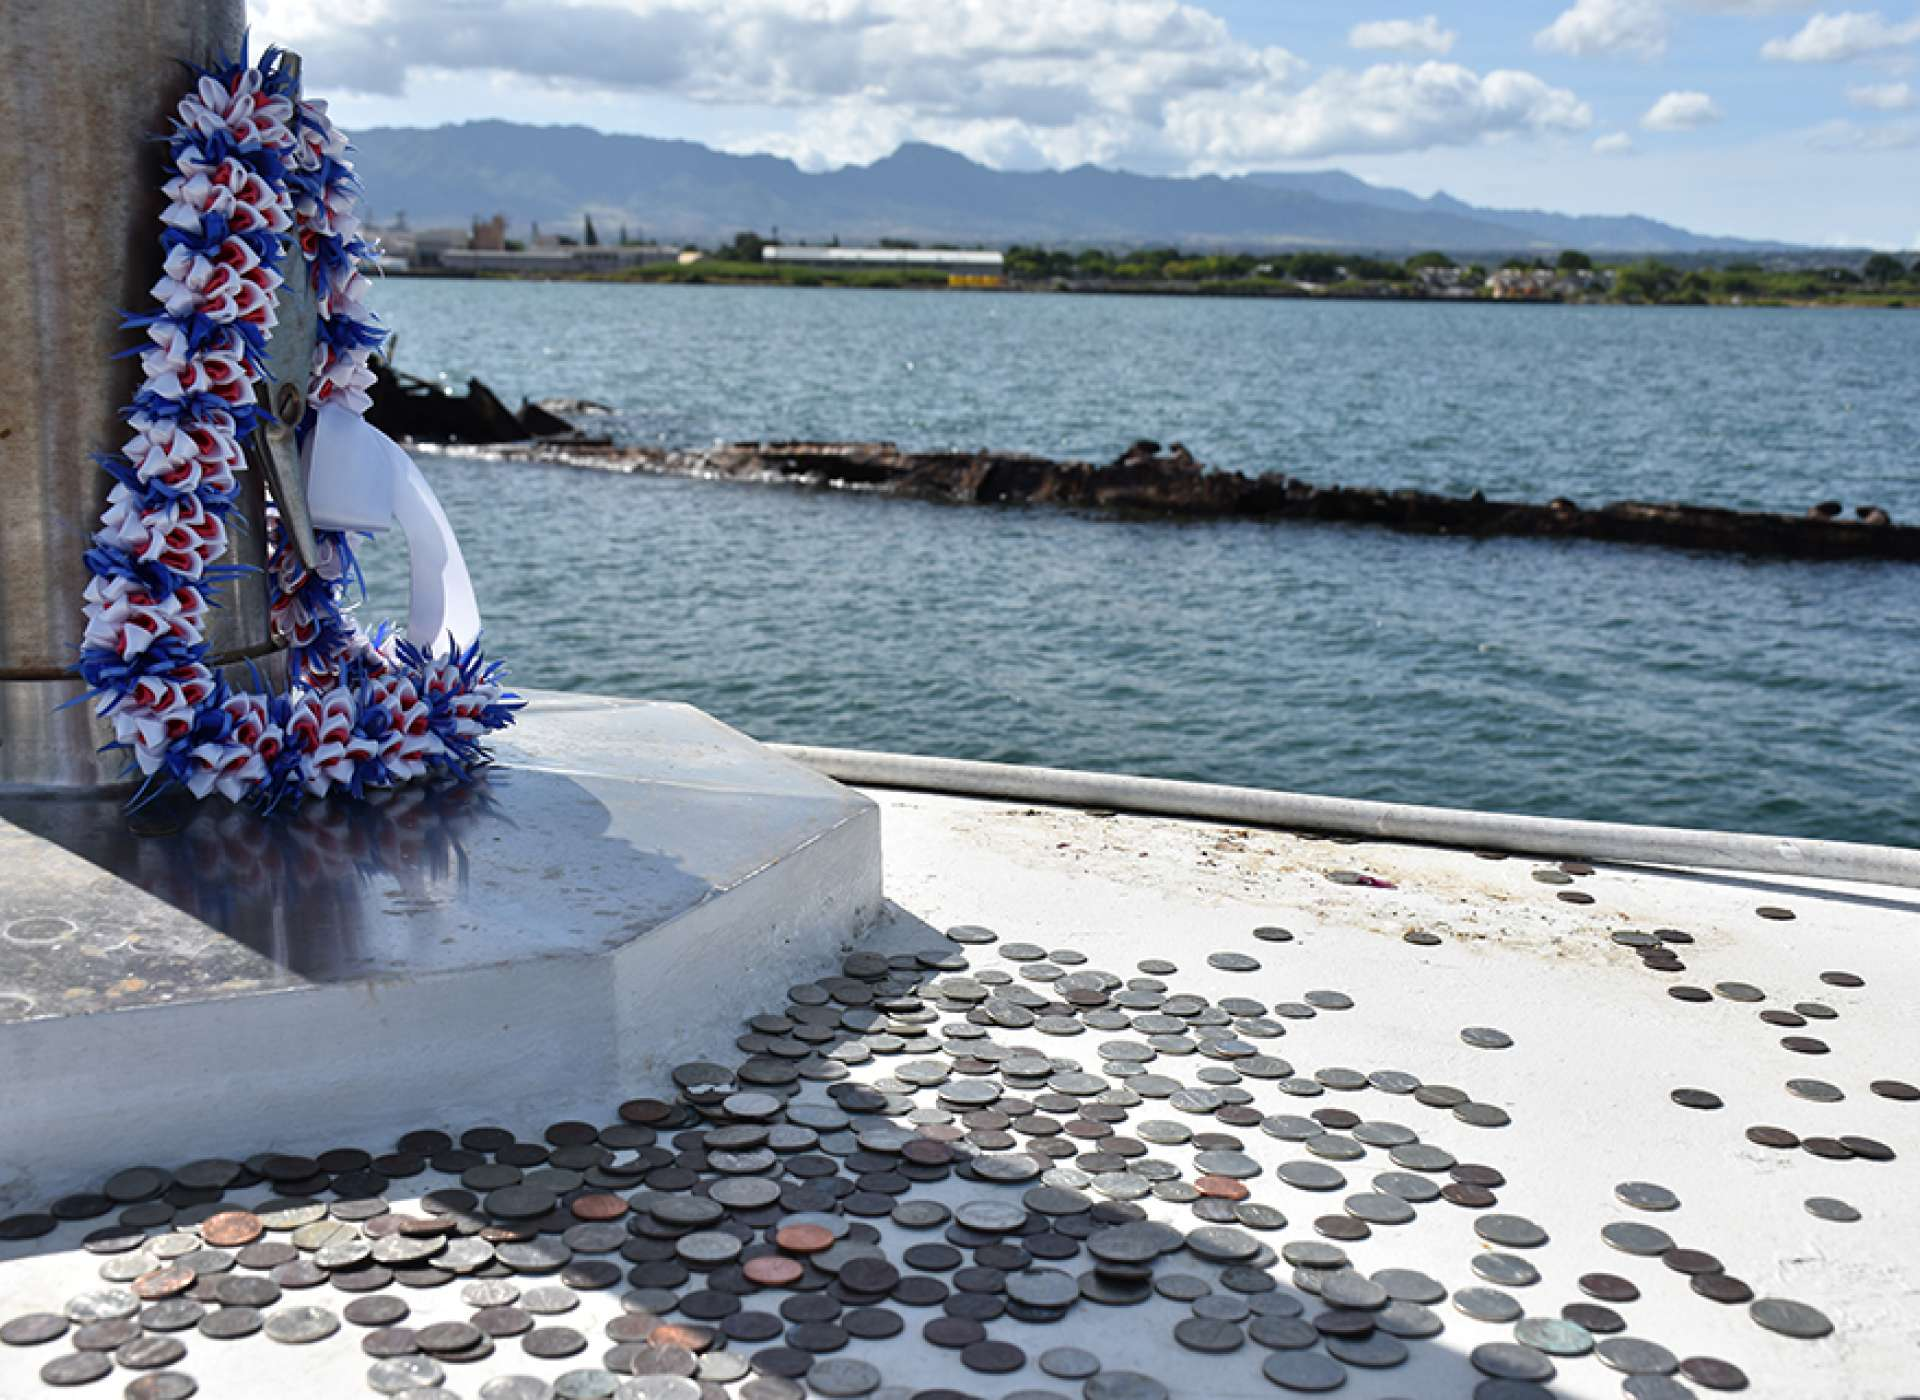 Coins and flowers at the USS Utah memorial on Ford Island, Pearl Harbor, Hawaii. Credit: Keith Huxen, PhD